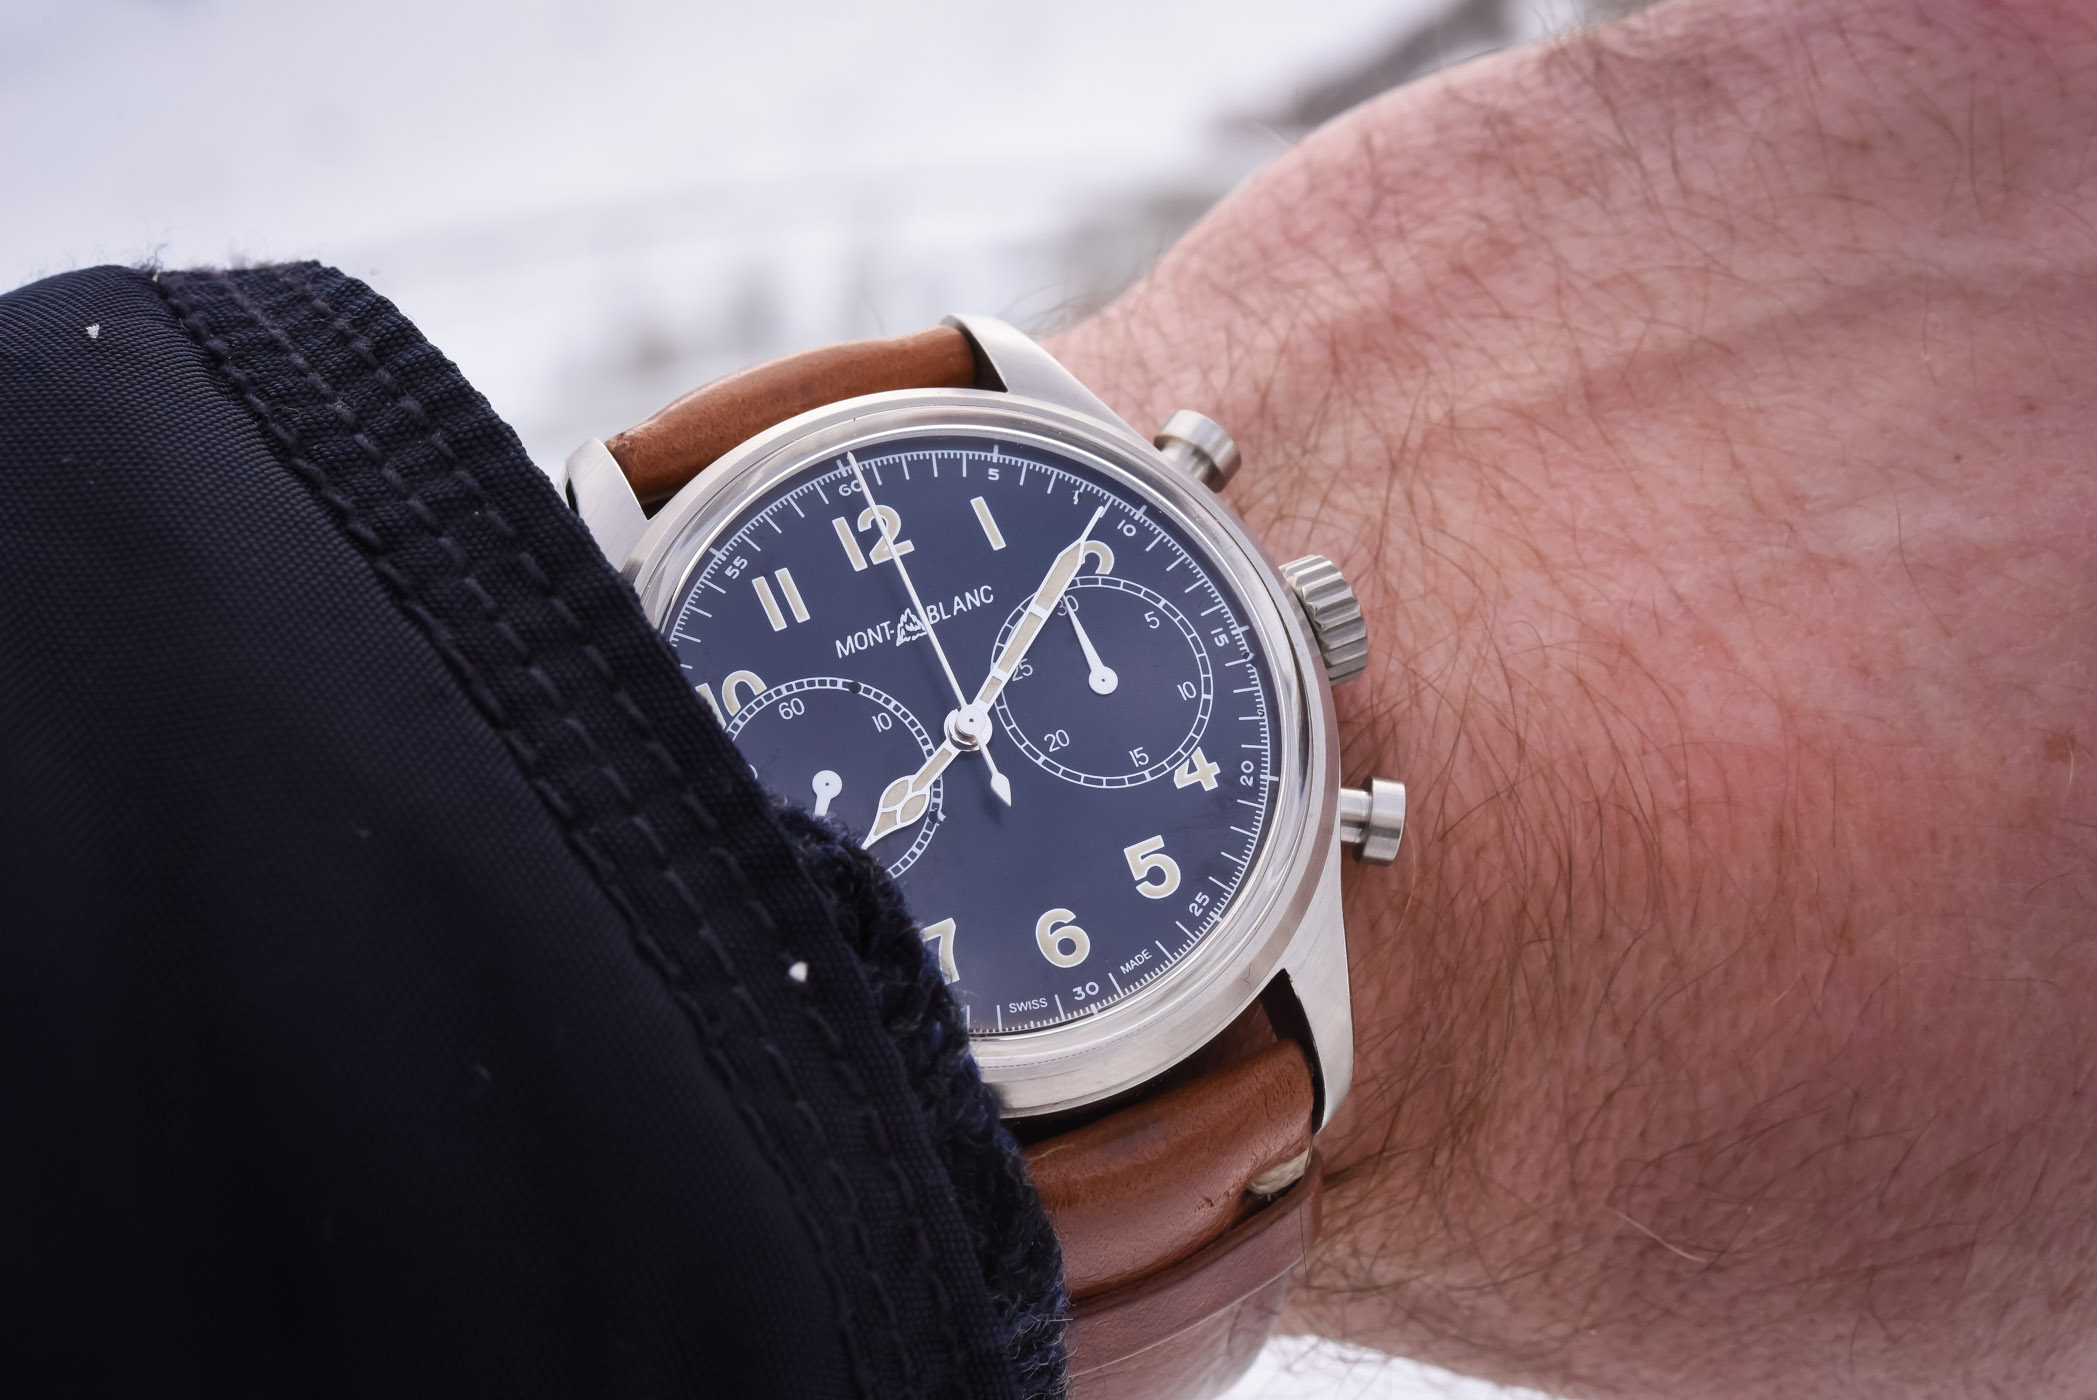 Montblanc 1858 Automatic Chronograph - SIHH 2018